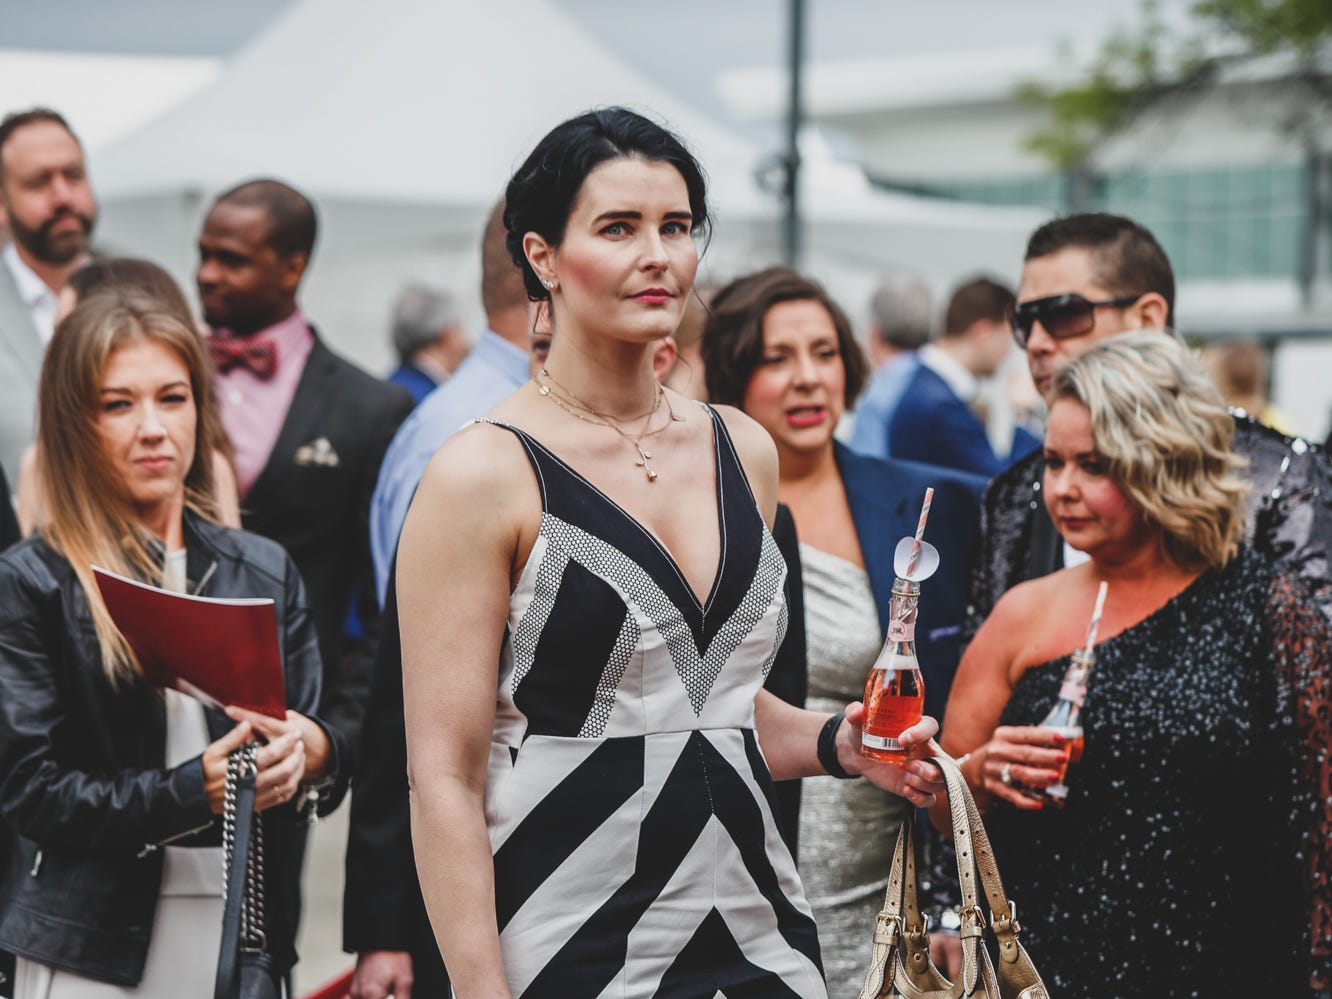 Guests wear their black and white best at the Rev Indy fundraiser held at the Indianapolis Motor Speedway on Saturday, May 4, 2019. Funds raised support the IU Health Foundation statewide and the IU Health Emergency Medical Center at IMS.